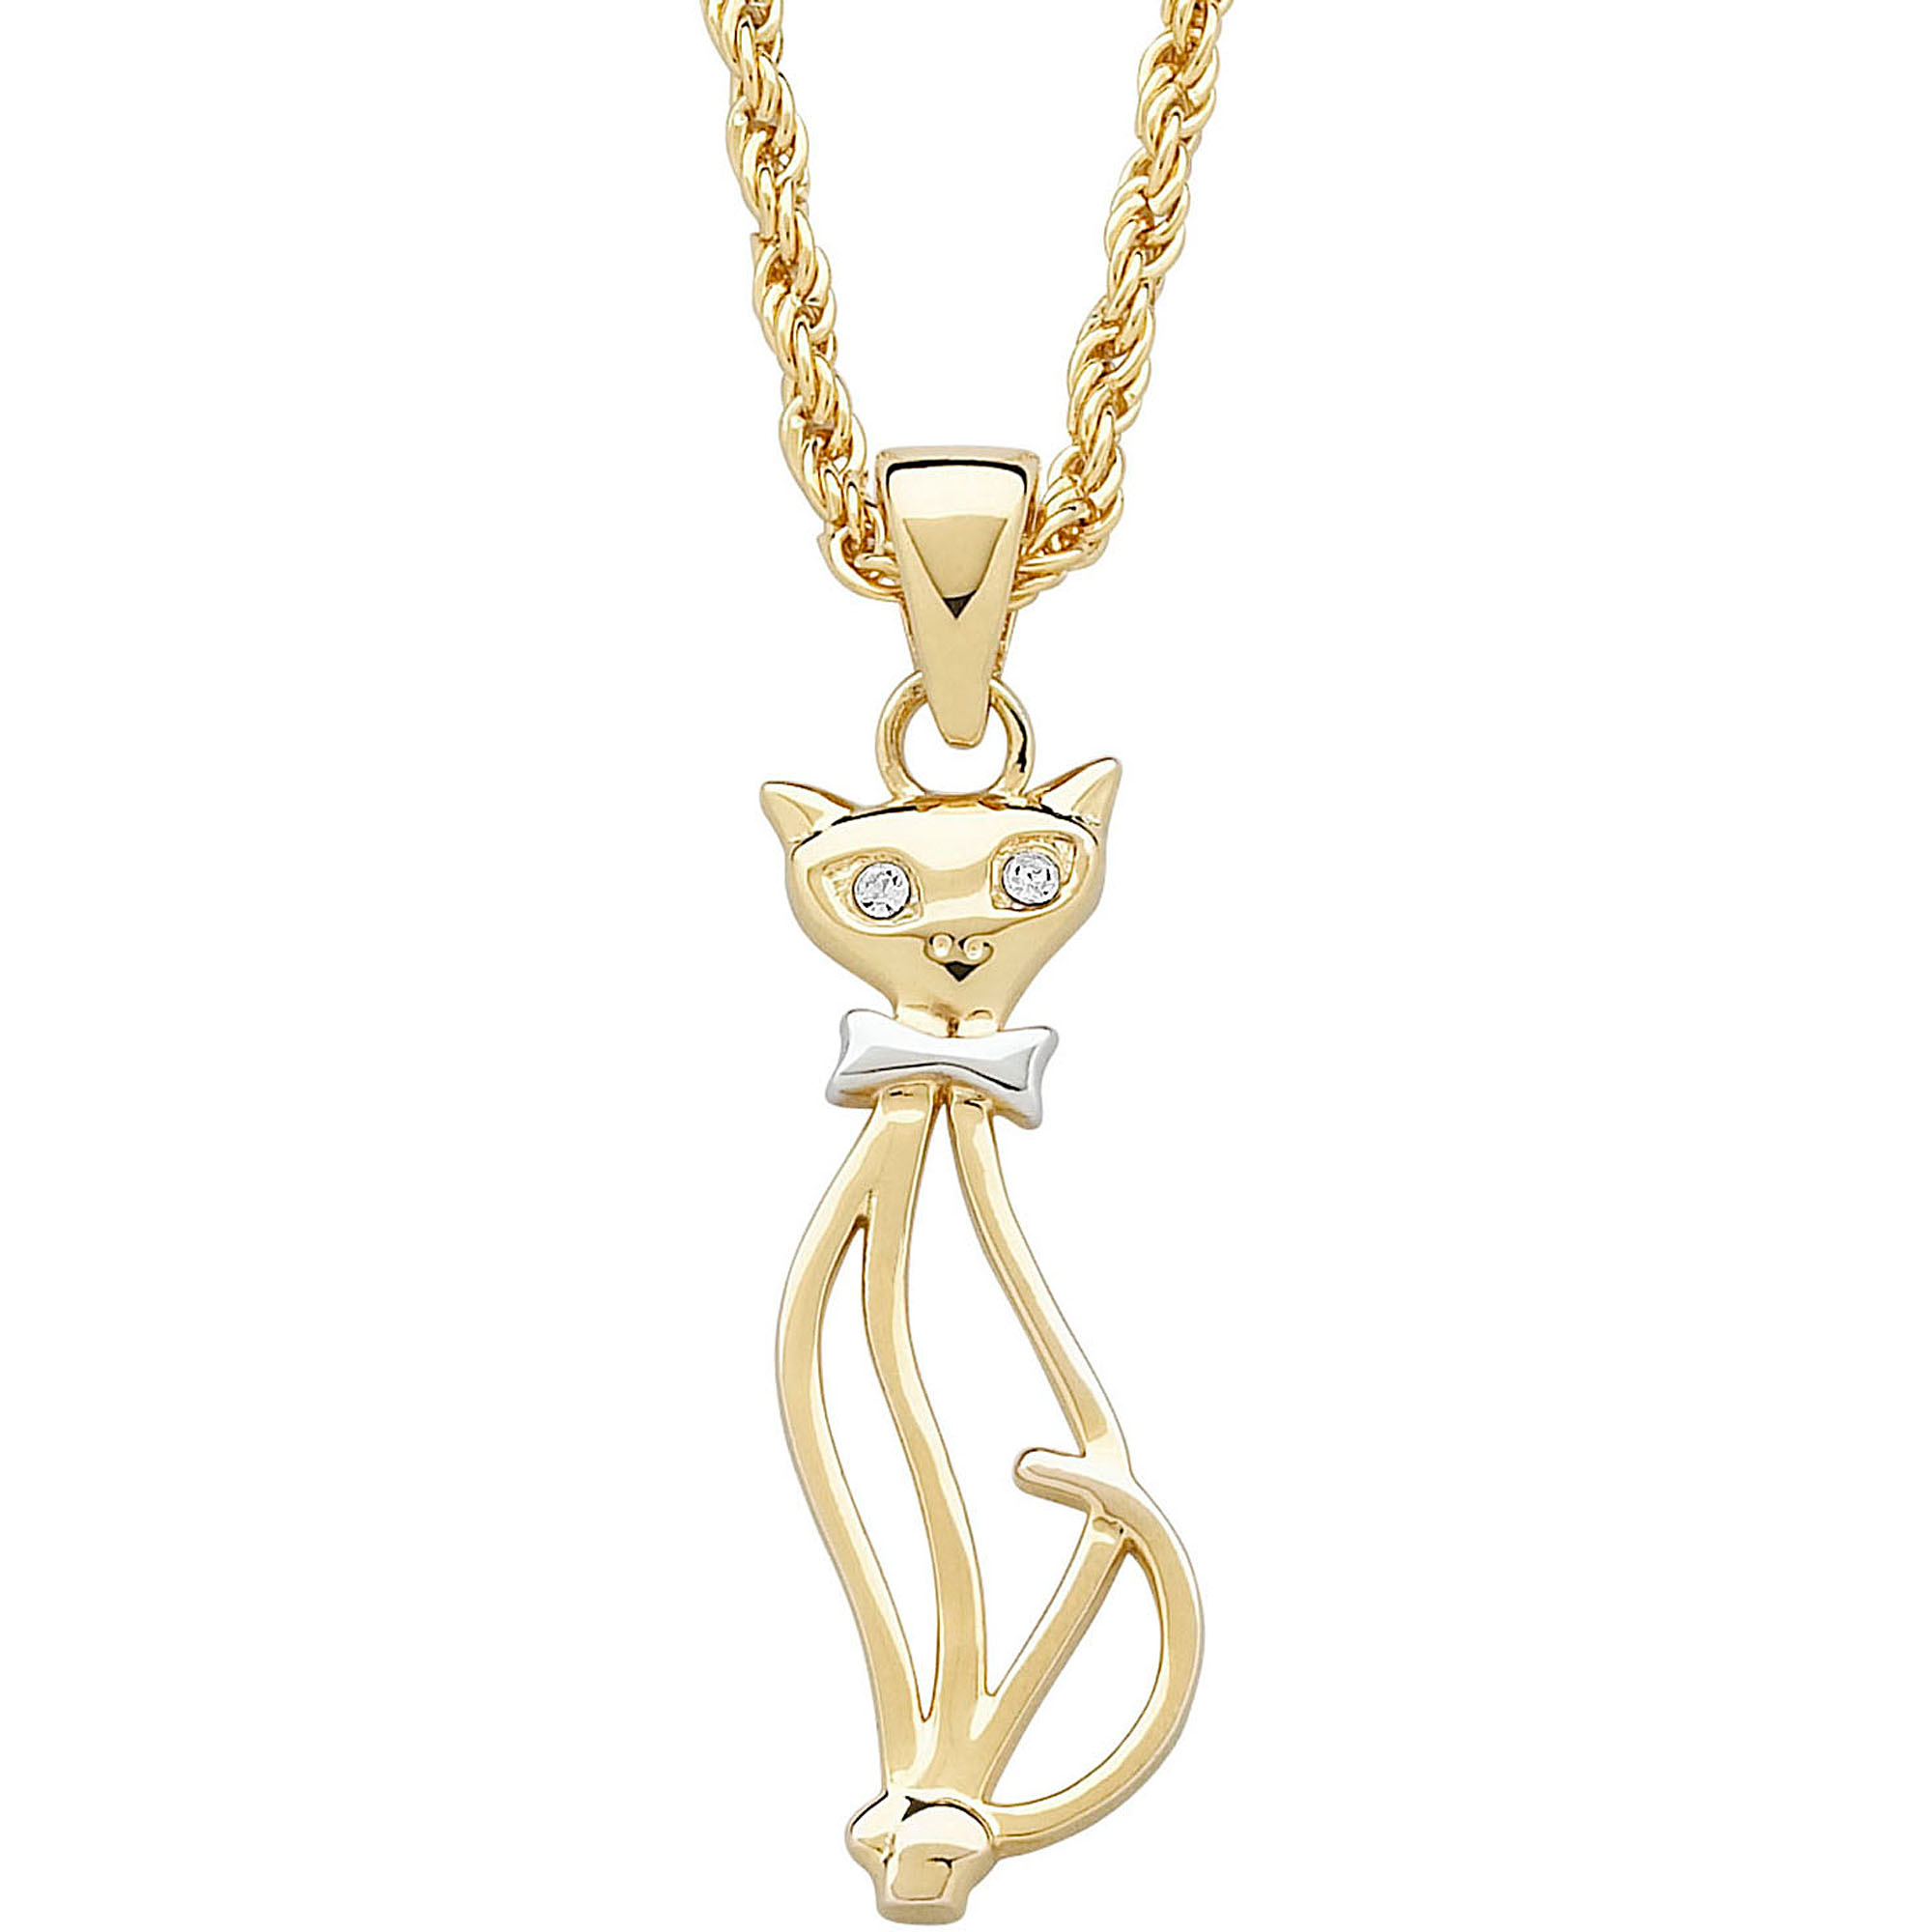 cat cadavid sandra products jewelry jewellery necklace